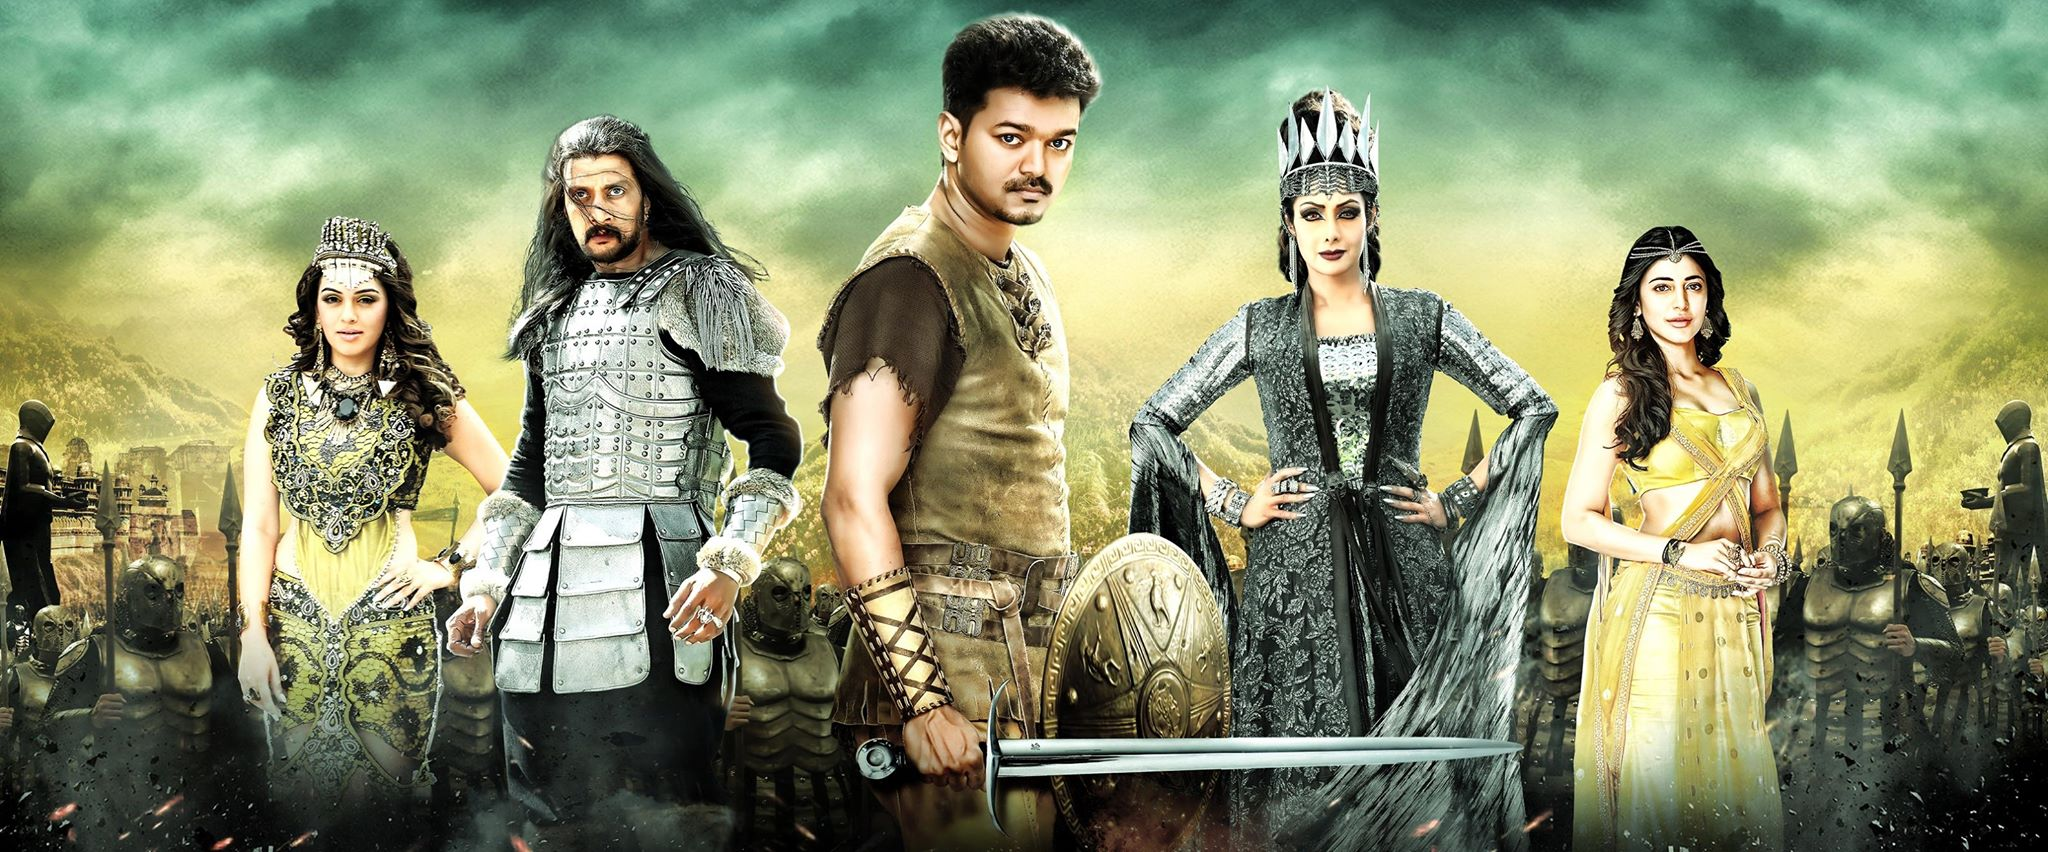 Poster of the film Puli.